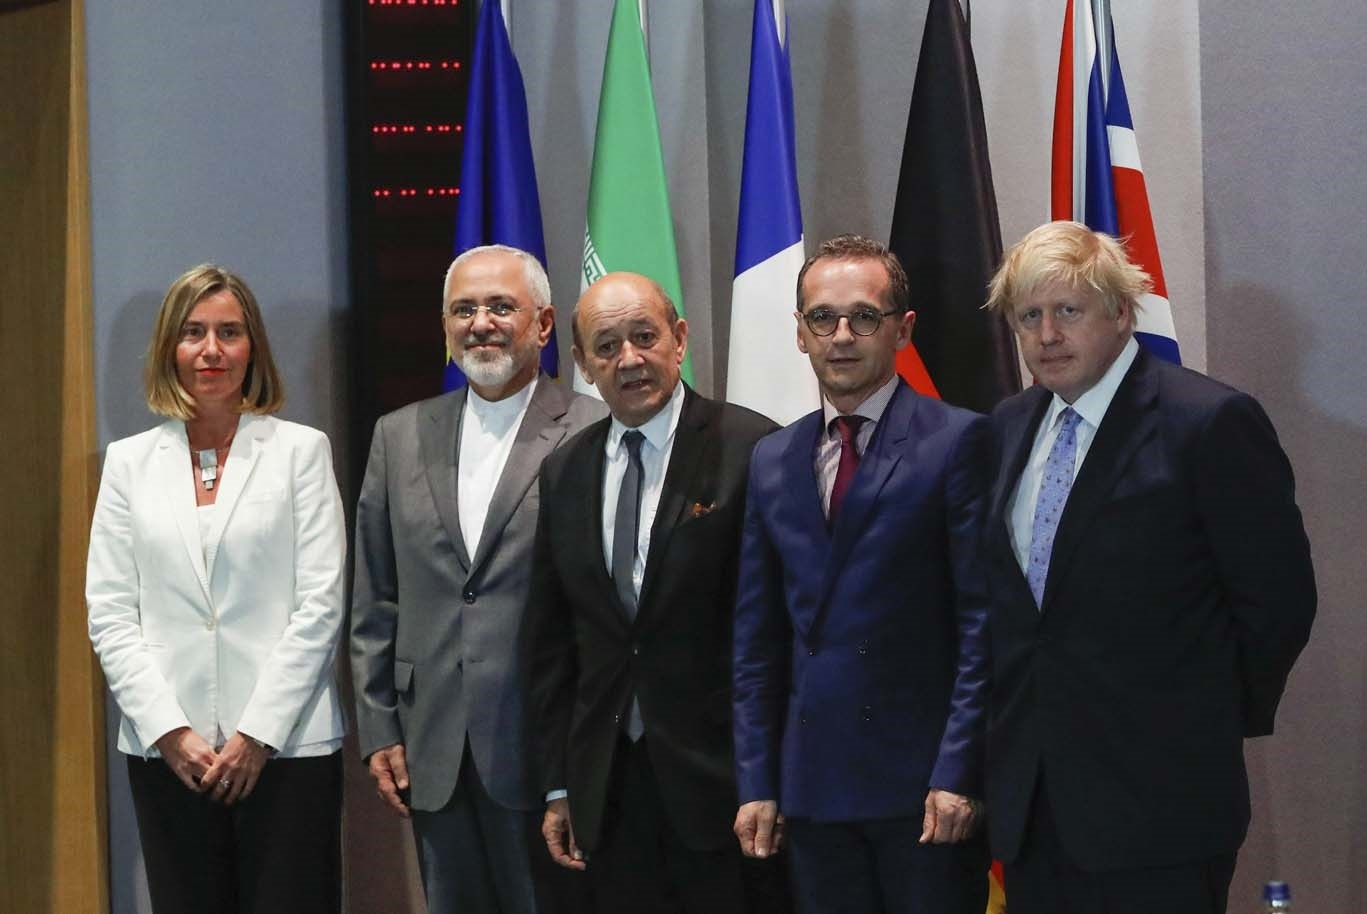 Britain's Foreign Secretary Boris Johnson (5-r), German FM Heiko Maas (C), French FM Jean-Yves Le Drian (4-R) and EU High Representative for Foreign Affairs Federica Mogherini take part in meeting with Iran's FM Mohammad Javad. (REUTERS Photo)